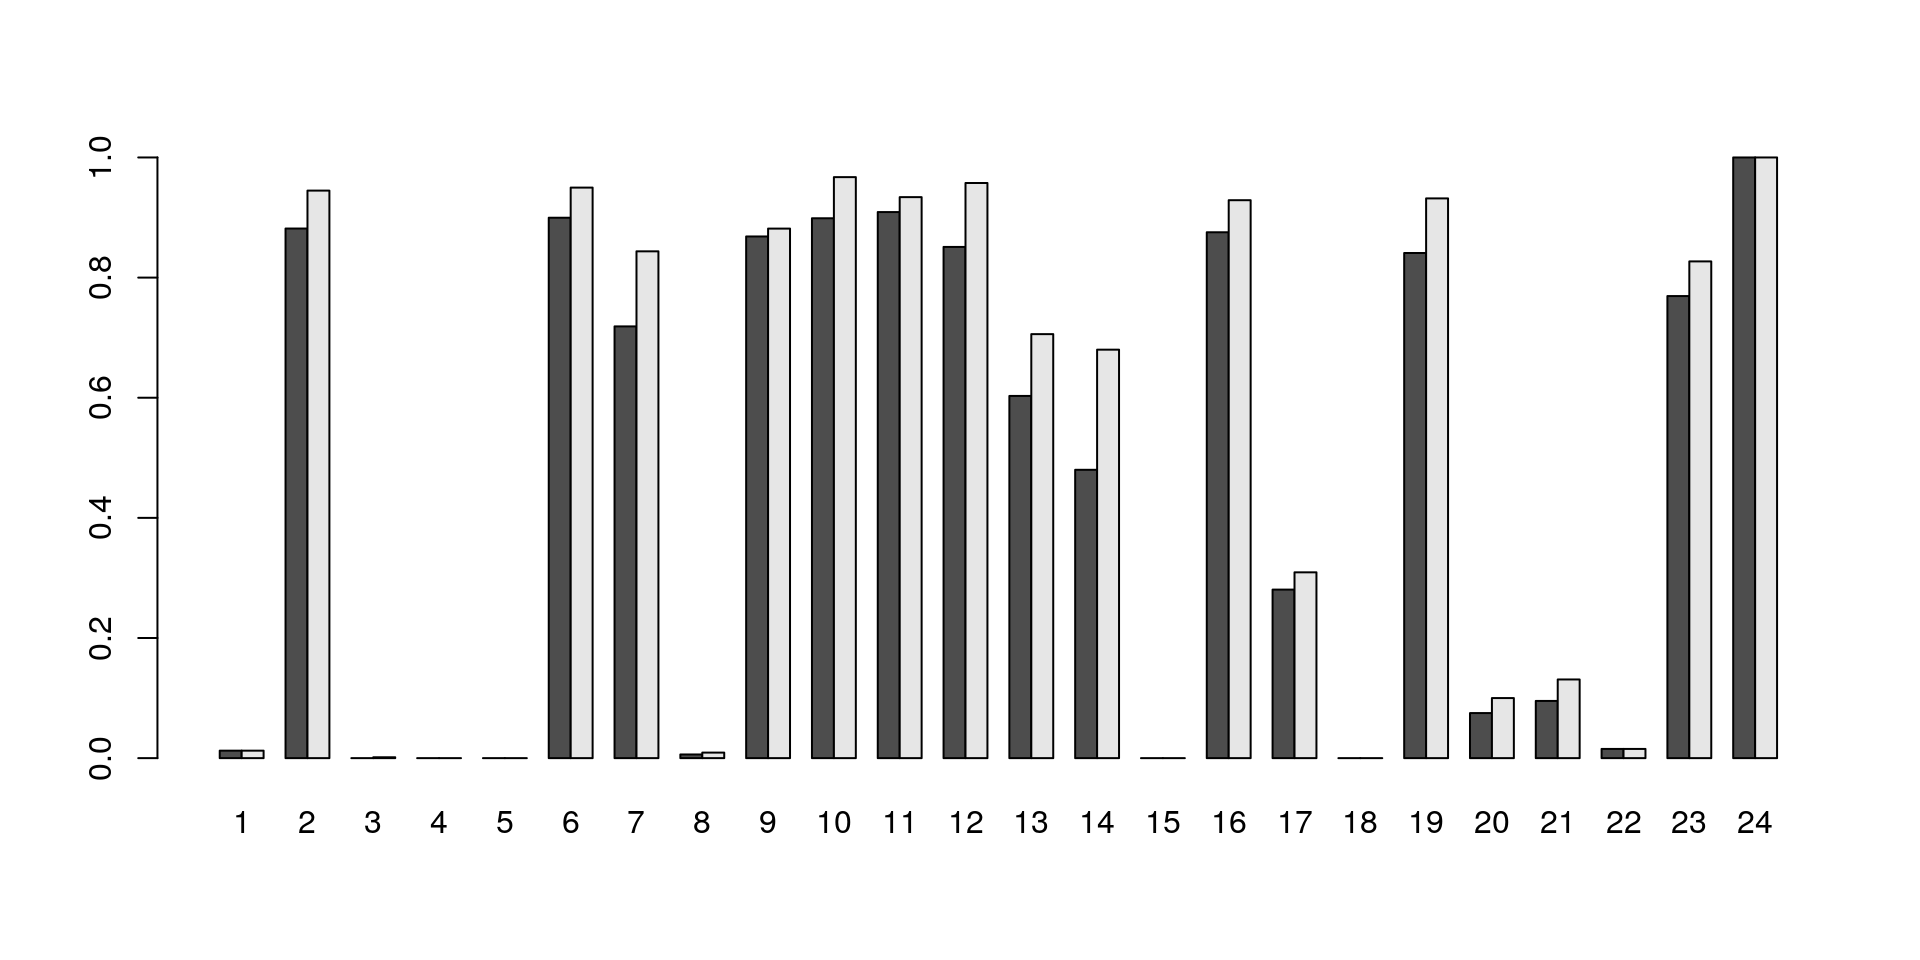 Proportion of cells in each cluster that express at least one sequence of the TCR $\alpha$ or $\beta$-chains.